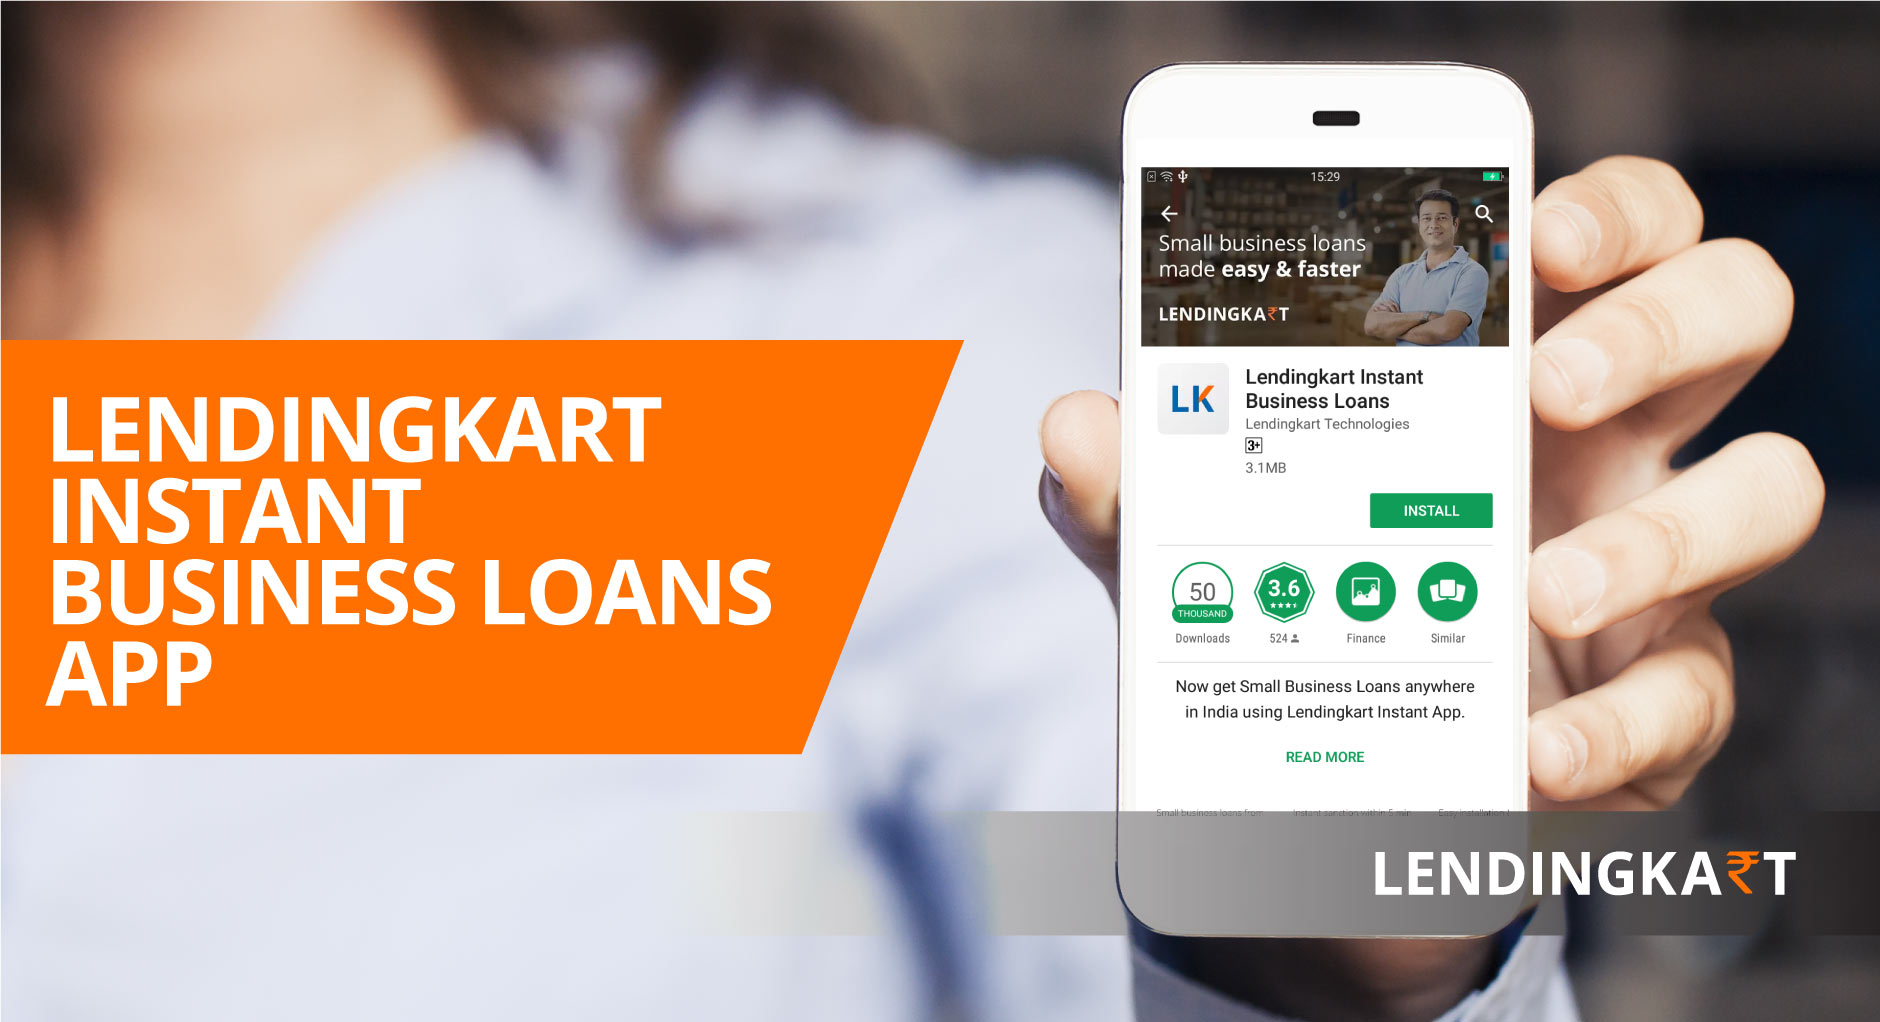 LENDINGKART CASE STUDY, FUNDING, BUSINESS MODEL, REVENUE MODEL, INVESTORS, COMPETITOR